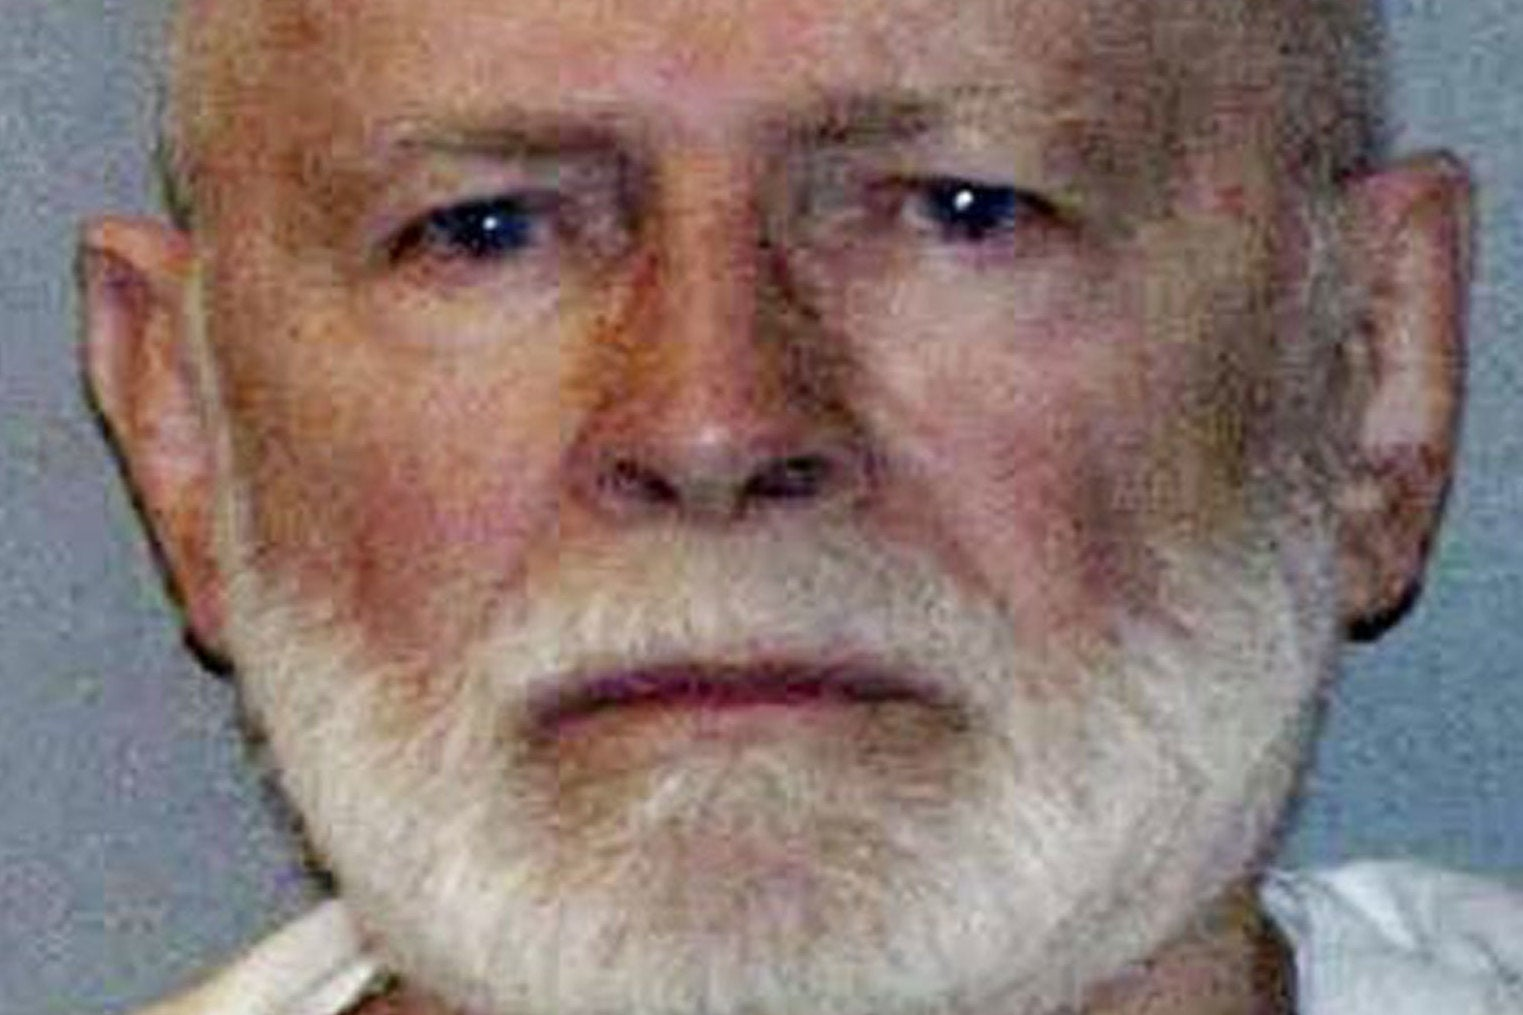 Whitey Bulger: Infamous Boston gangster killed in West